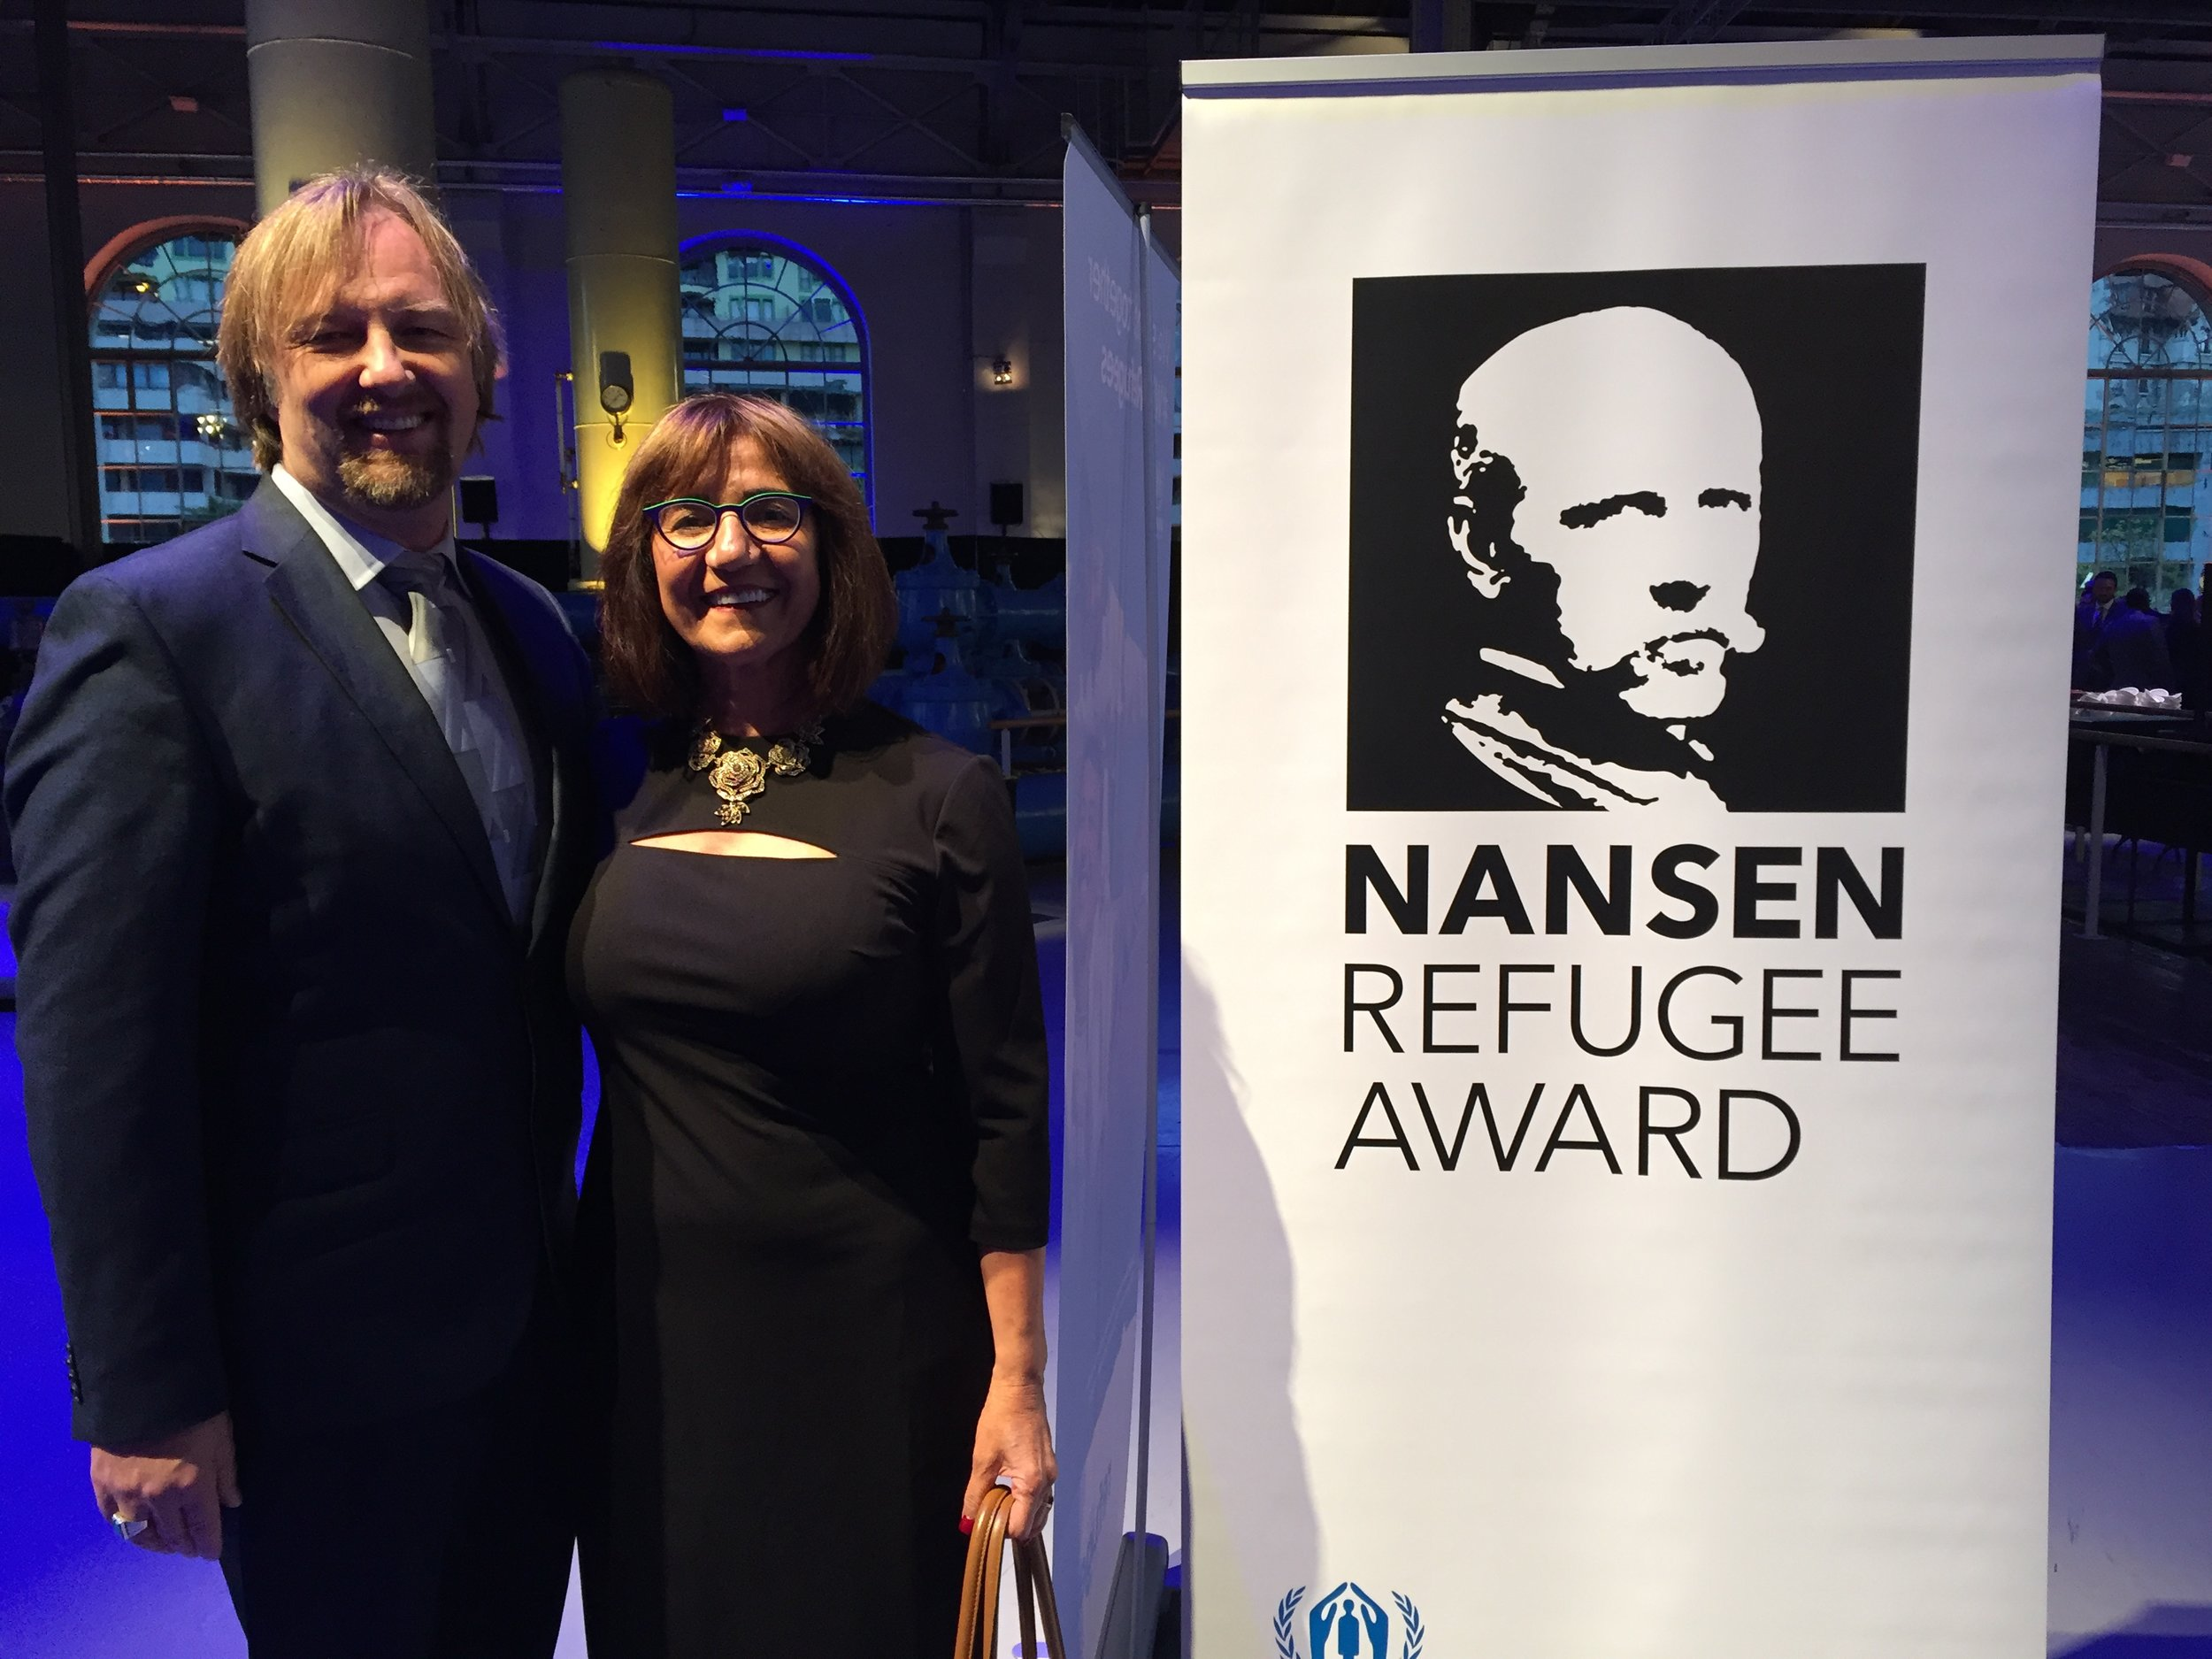 Women of the World is the UNHCR's 2018 Americas Nansen Award Winner - This October in Geneva, Switzerland, Samira Harnish recently was awarded the UNHCR's highest honor for refugee service.The Nansen Award is awarded each year by the United Nations High Commissioner for Refugees and highlights the efforts Women of the World has made in resettling refugees in Salt Lake City.